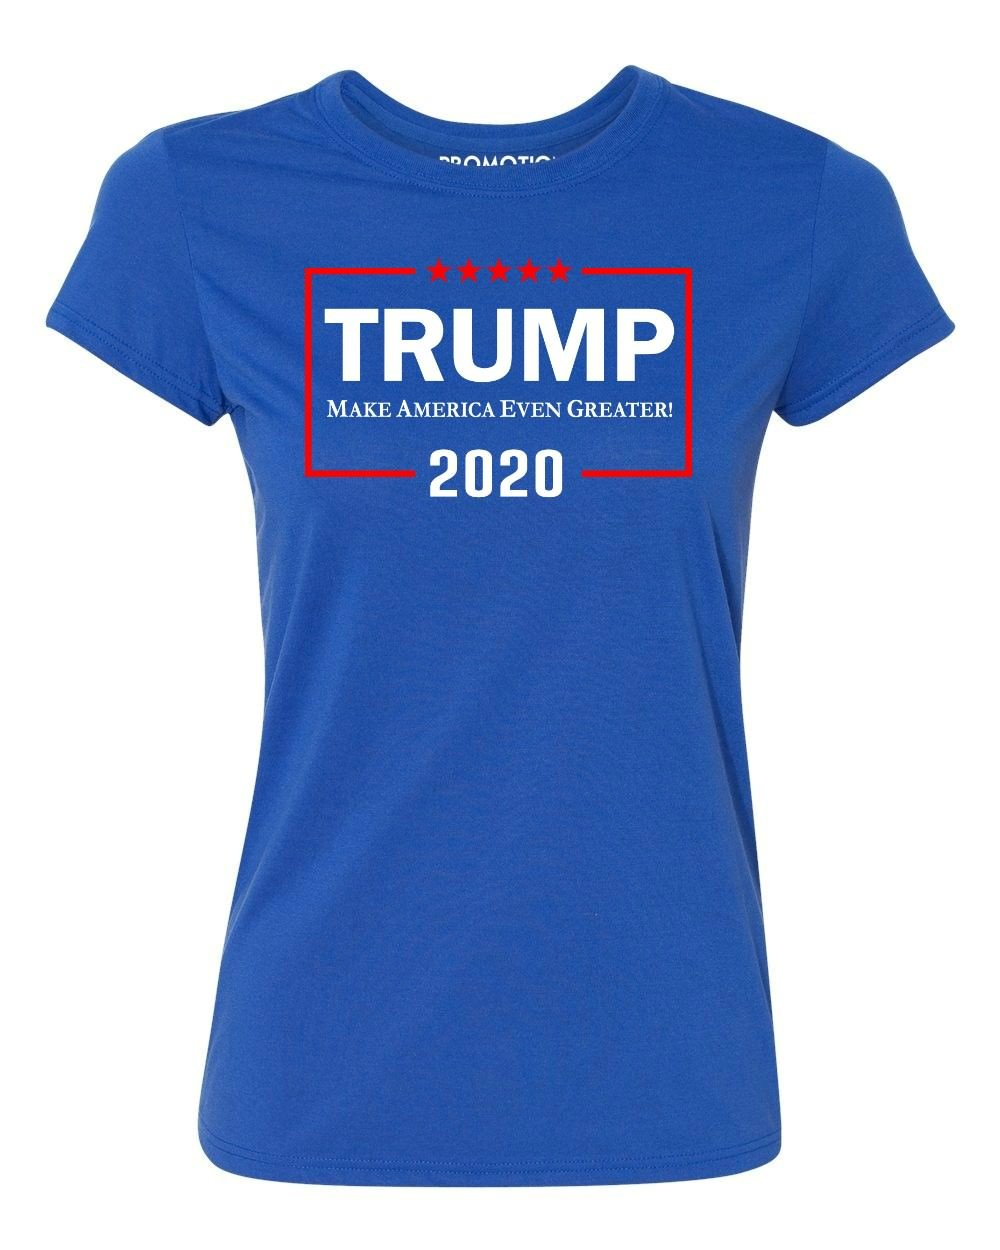 Promotion Beyond Donald Trump 2020 Even Greater And Text T Shirt 1494